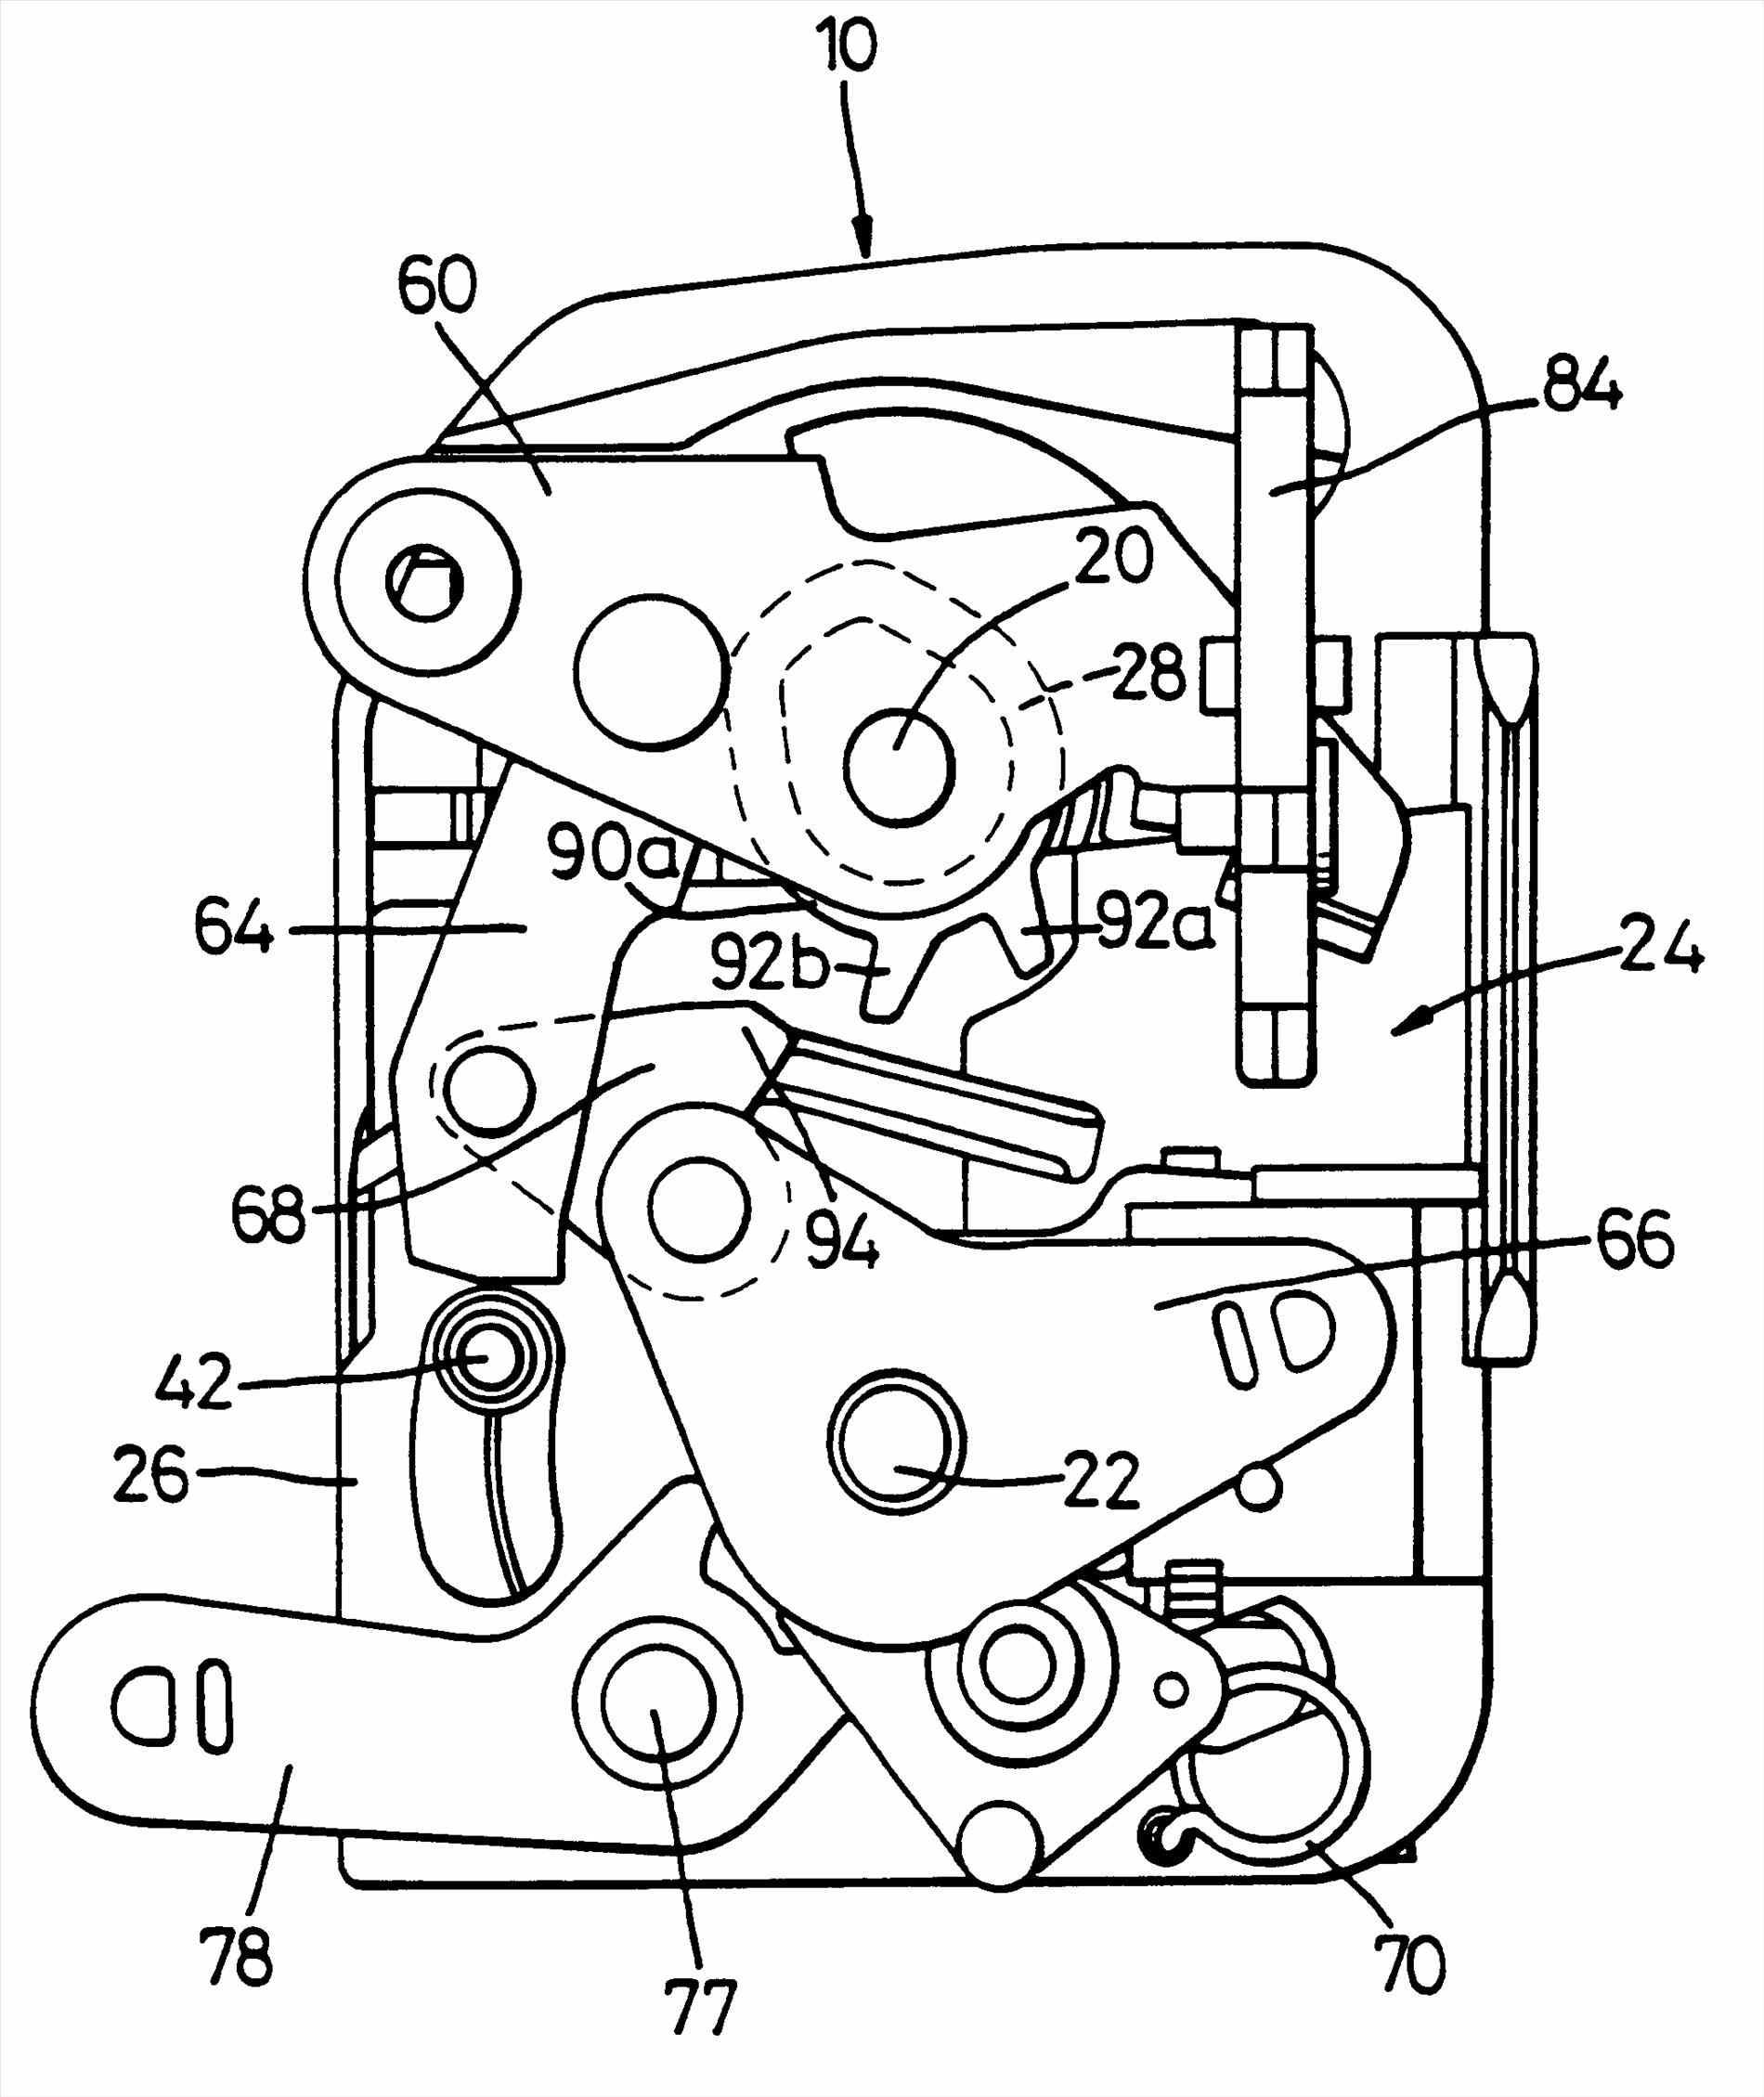 assembly google patents porsche boxster lock mechanism handle